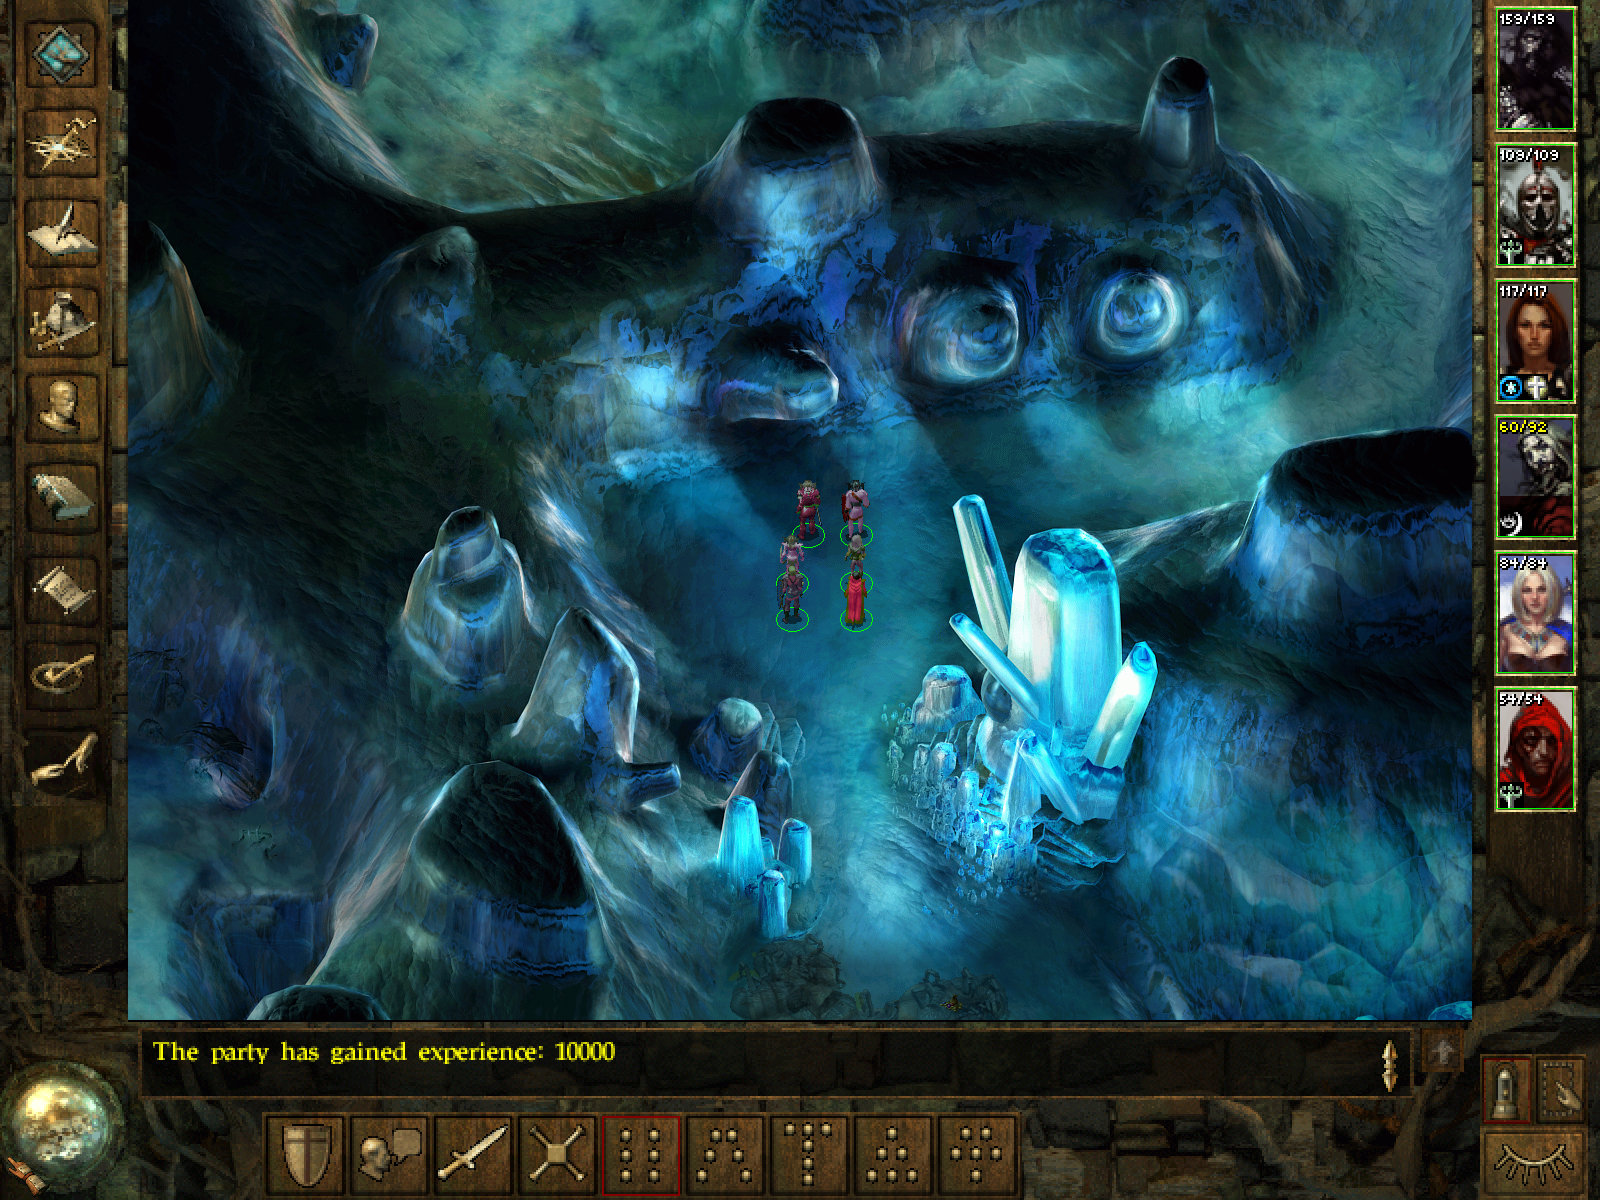 Icewind Dale: Heart Of Winter Backgrounds, Compatible - PC, Mobile, Gadgets| 1600x1200 px